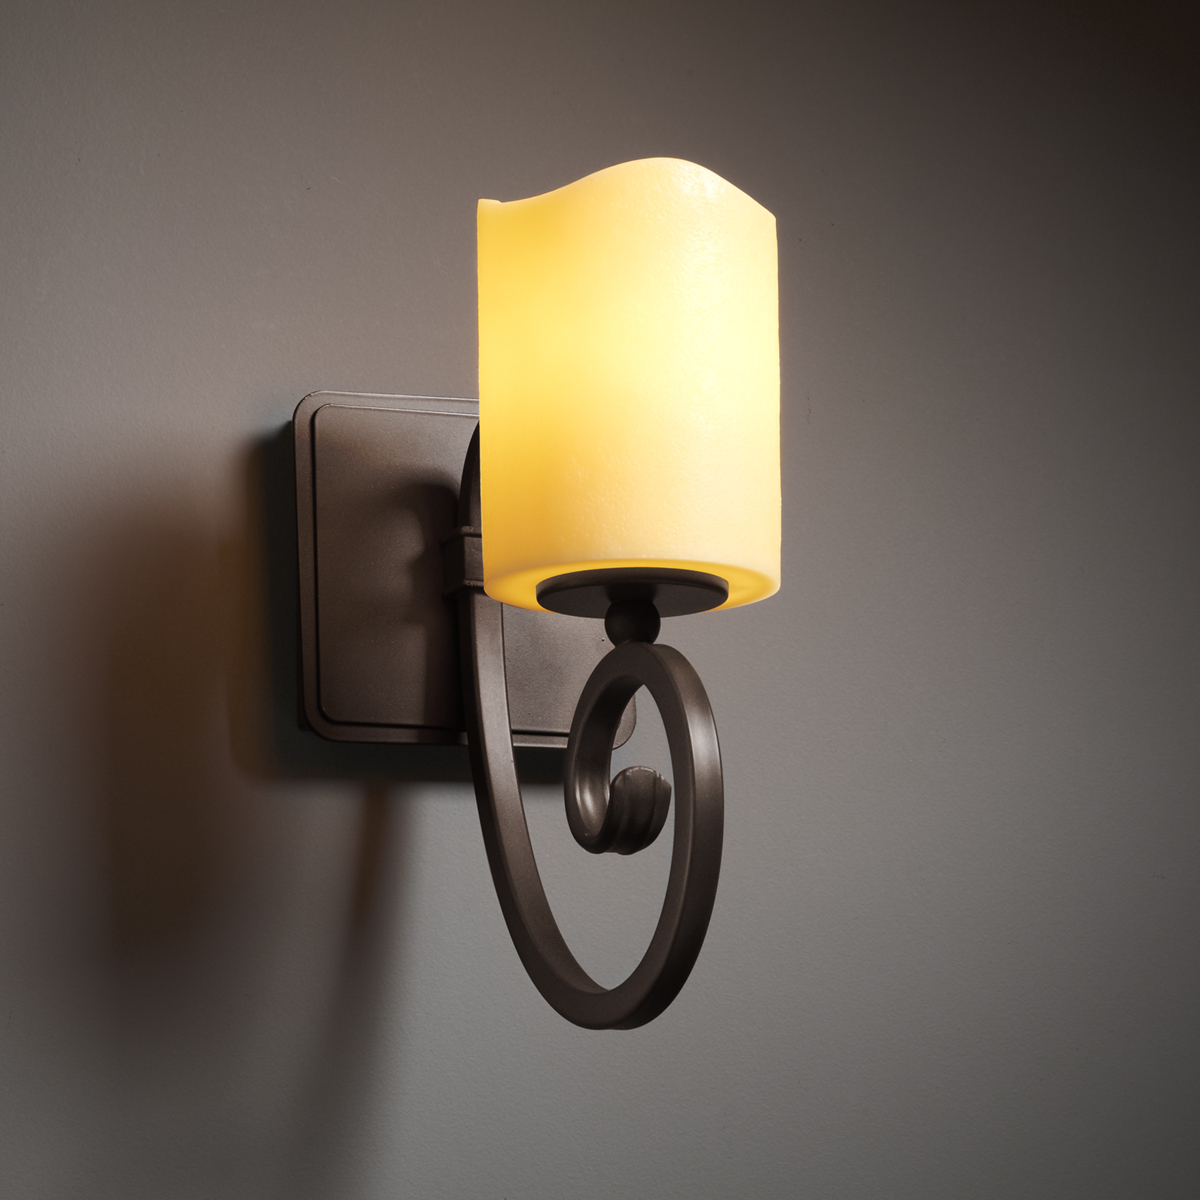 Justice Design (CNDL-8571) Victoria 1-Light Wall Sconce from the CandleAria Collection